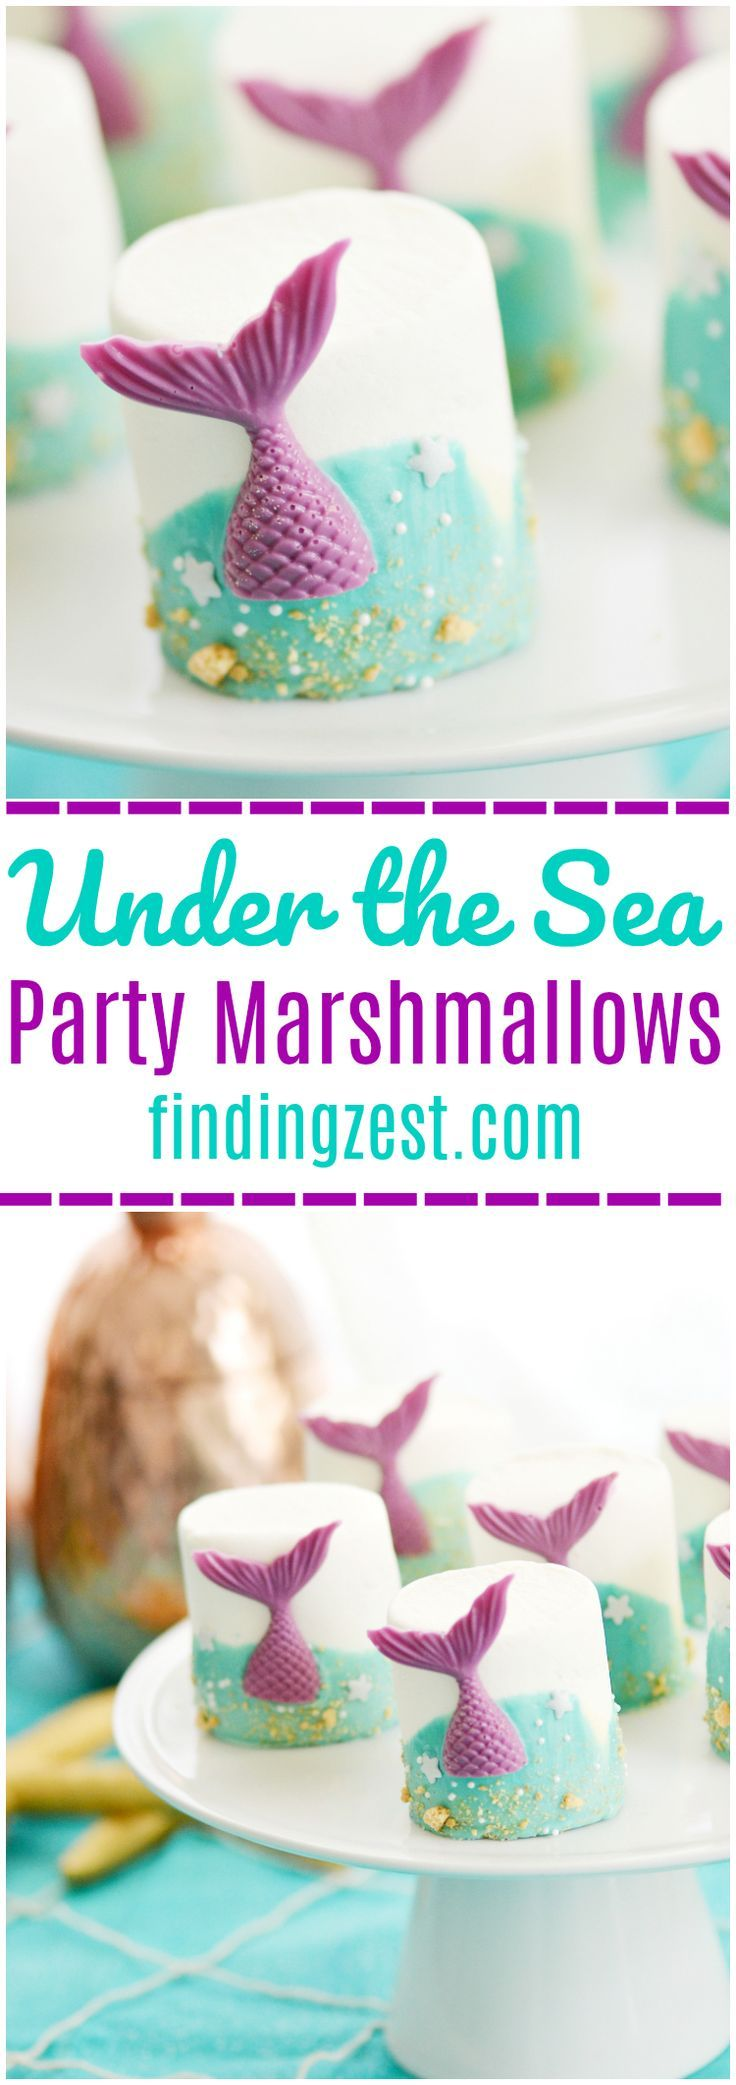 If you are searching for under the sea party ideas, look no further than these mermaid tail marshmallows! This no-bake treat features colorful chocolate mermaid tails and swirled chocolate waves. It is the perfect addition to any mermaid party or under the sea birthday themes! #mermaidparty #mermaidtail #underthesea #birthdayparty #marshmallows